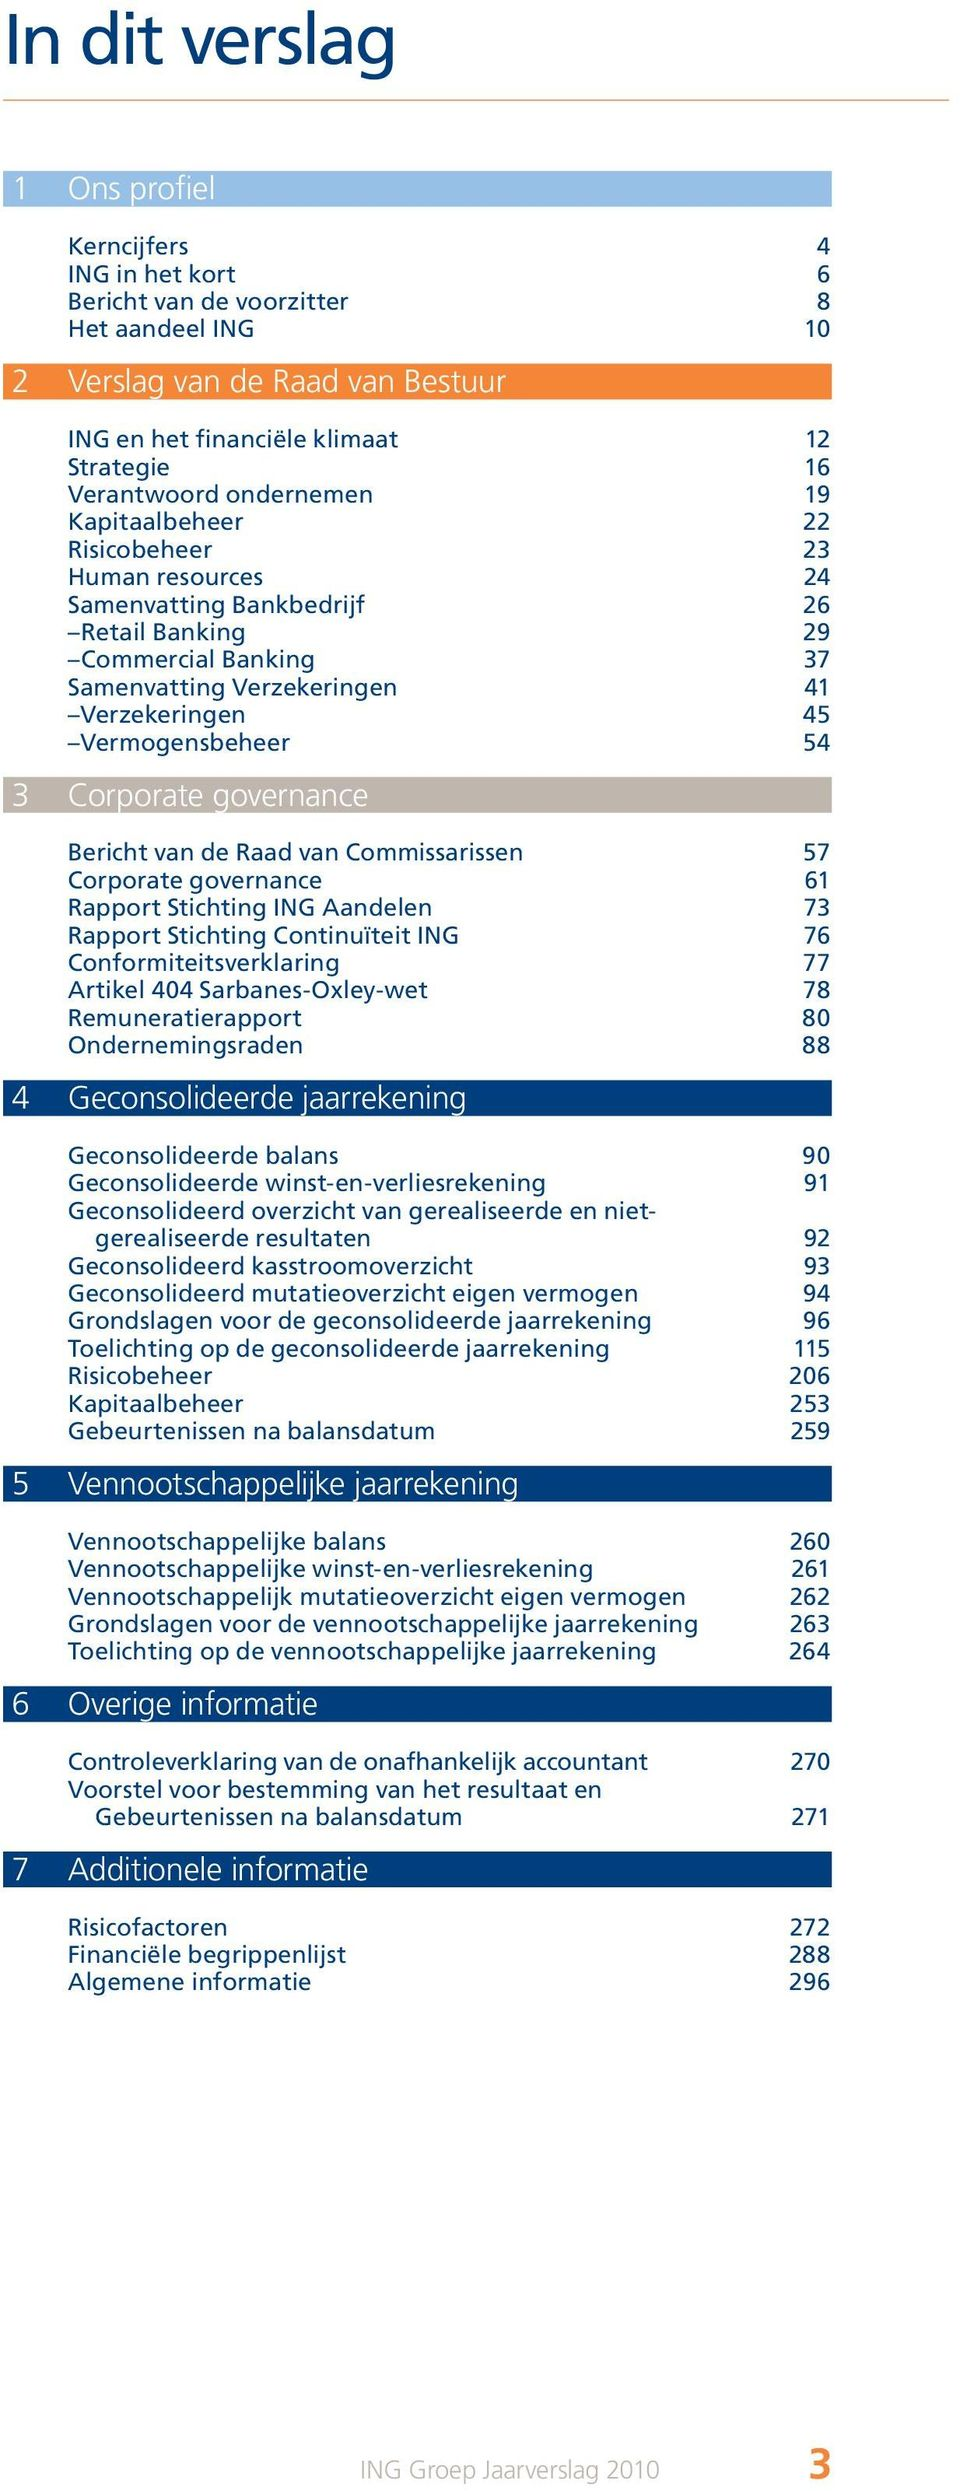 54 3 Corporate governance Bericht van de Raad van Commissarissen 57 Corporate governance 61 Rapport Stichting ING Aandelen 73 Rapport Stichting Continuïteit ING 76 Conformiteitsverklaring 77 Artikel